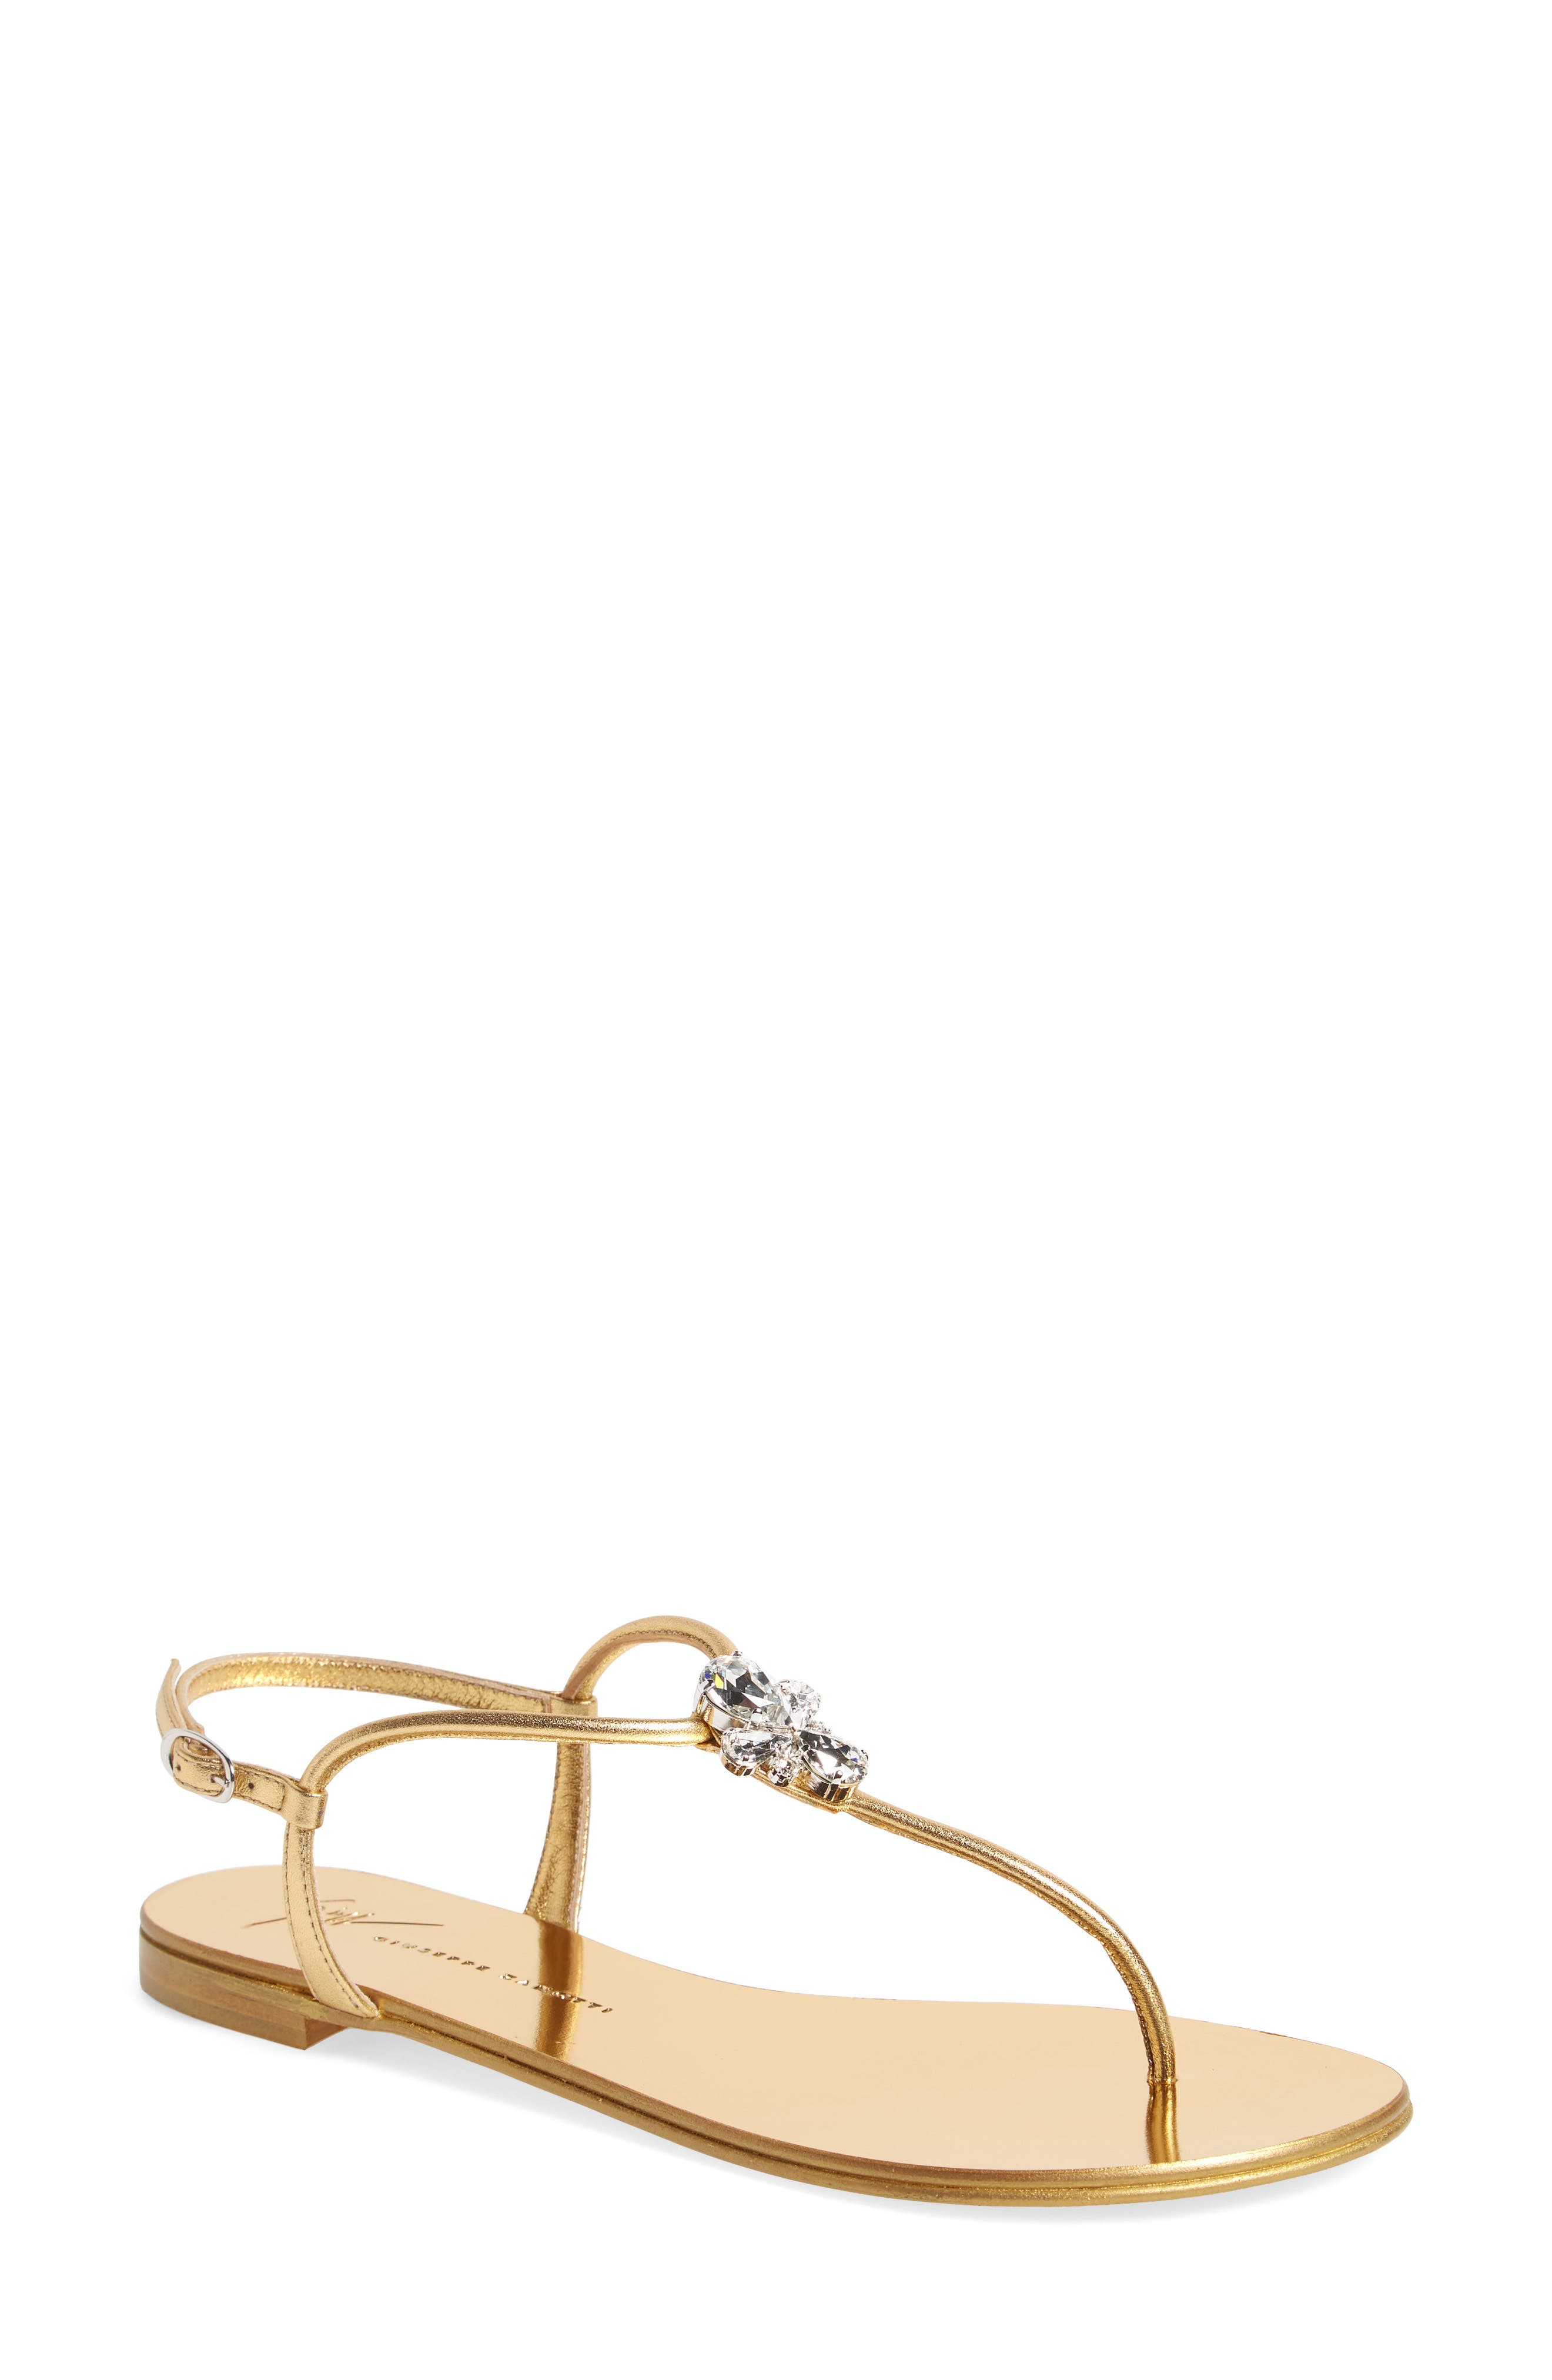 Crystal T-Strap Sandal,                         Main,                         color, GOLD